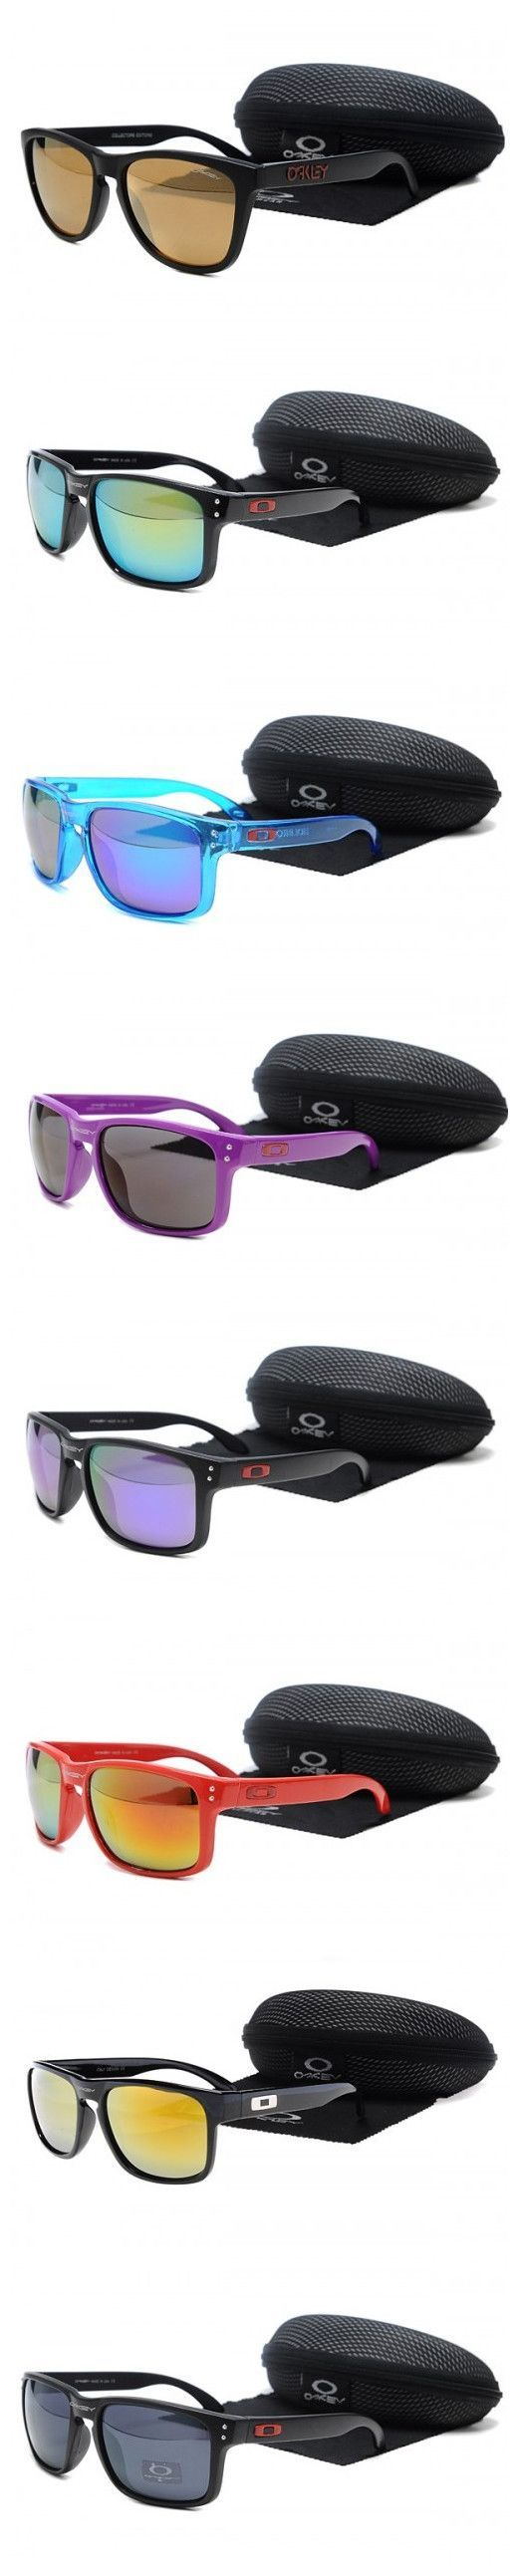 ladies oakley sunglasses sale  2015 luxury fashion sunglasses outlet, oakley sunglasses, rayban sunglasses sale up to off